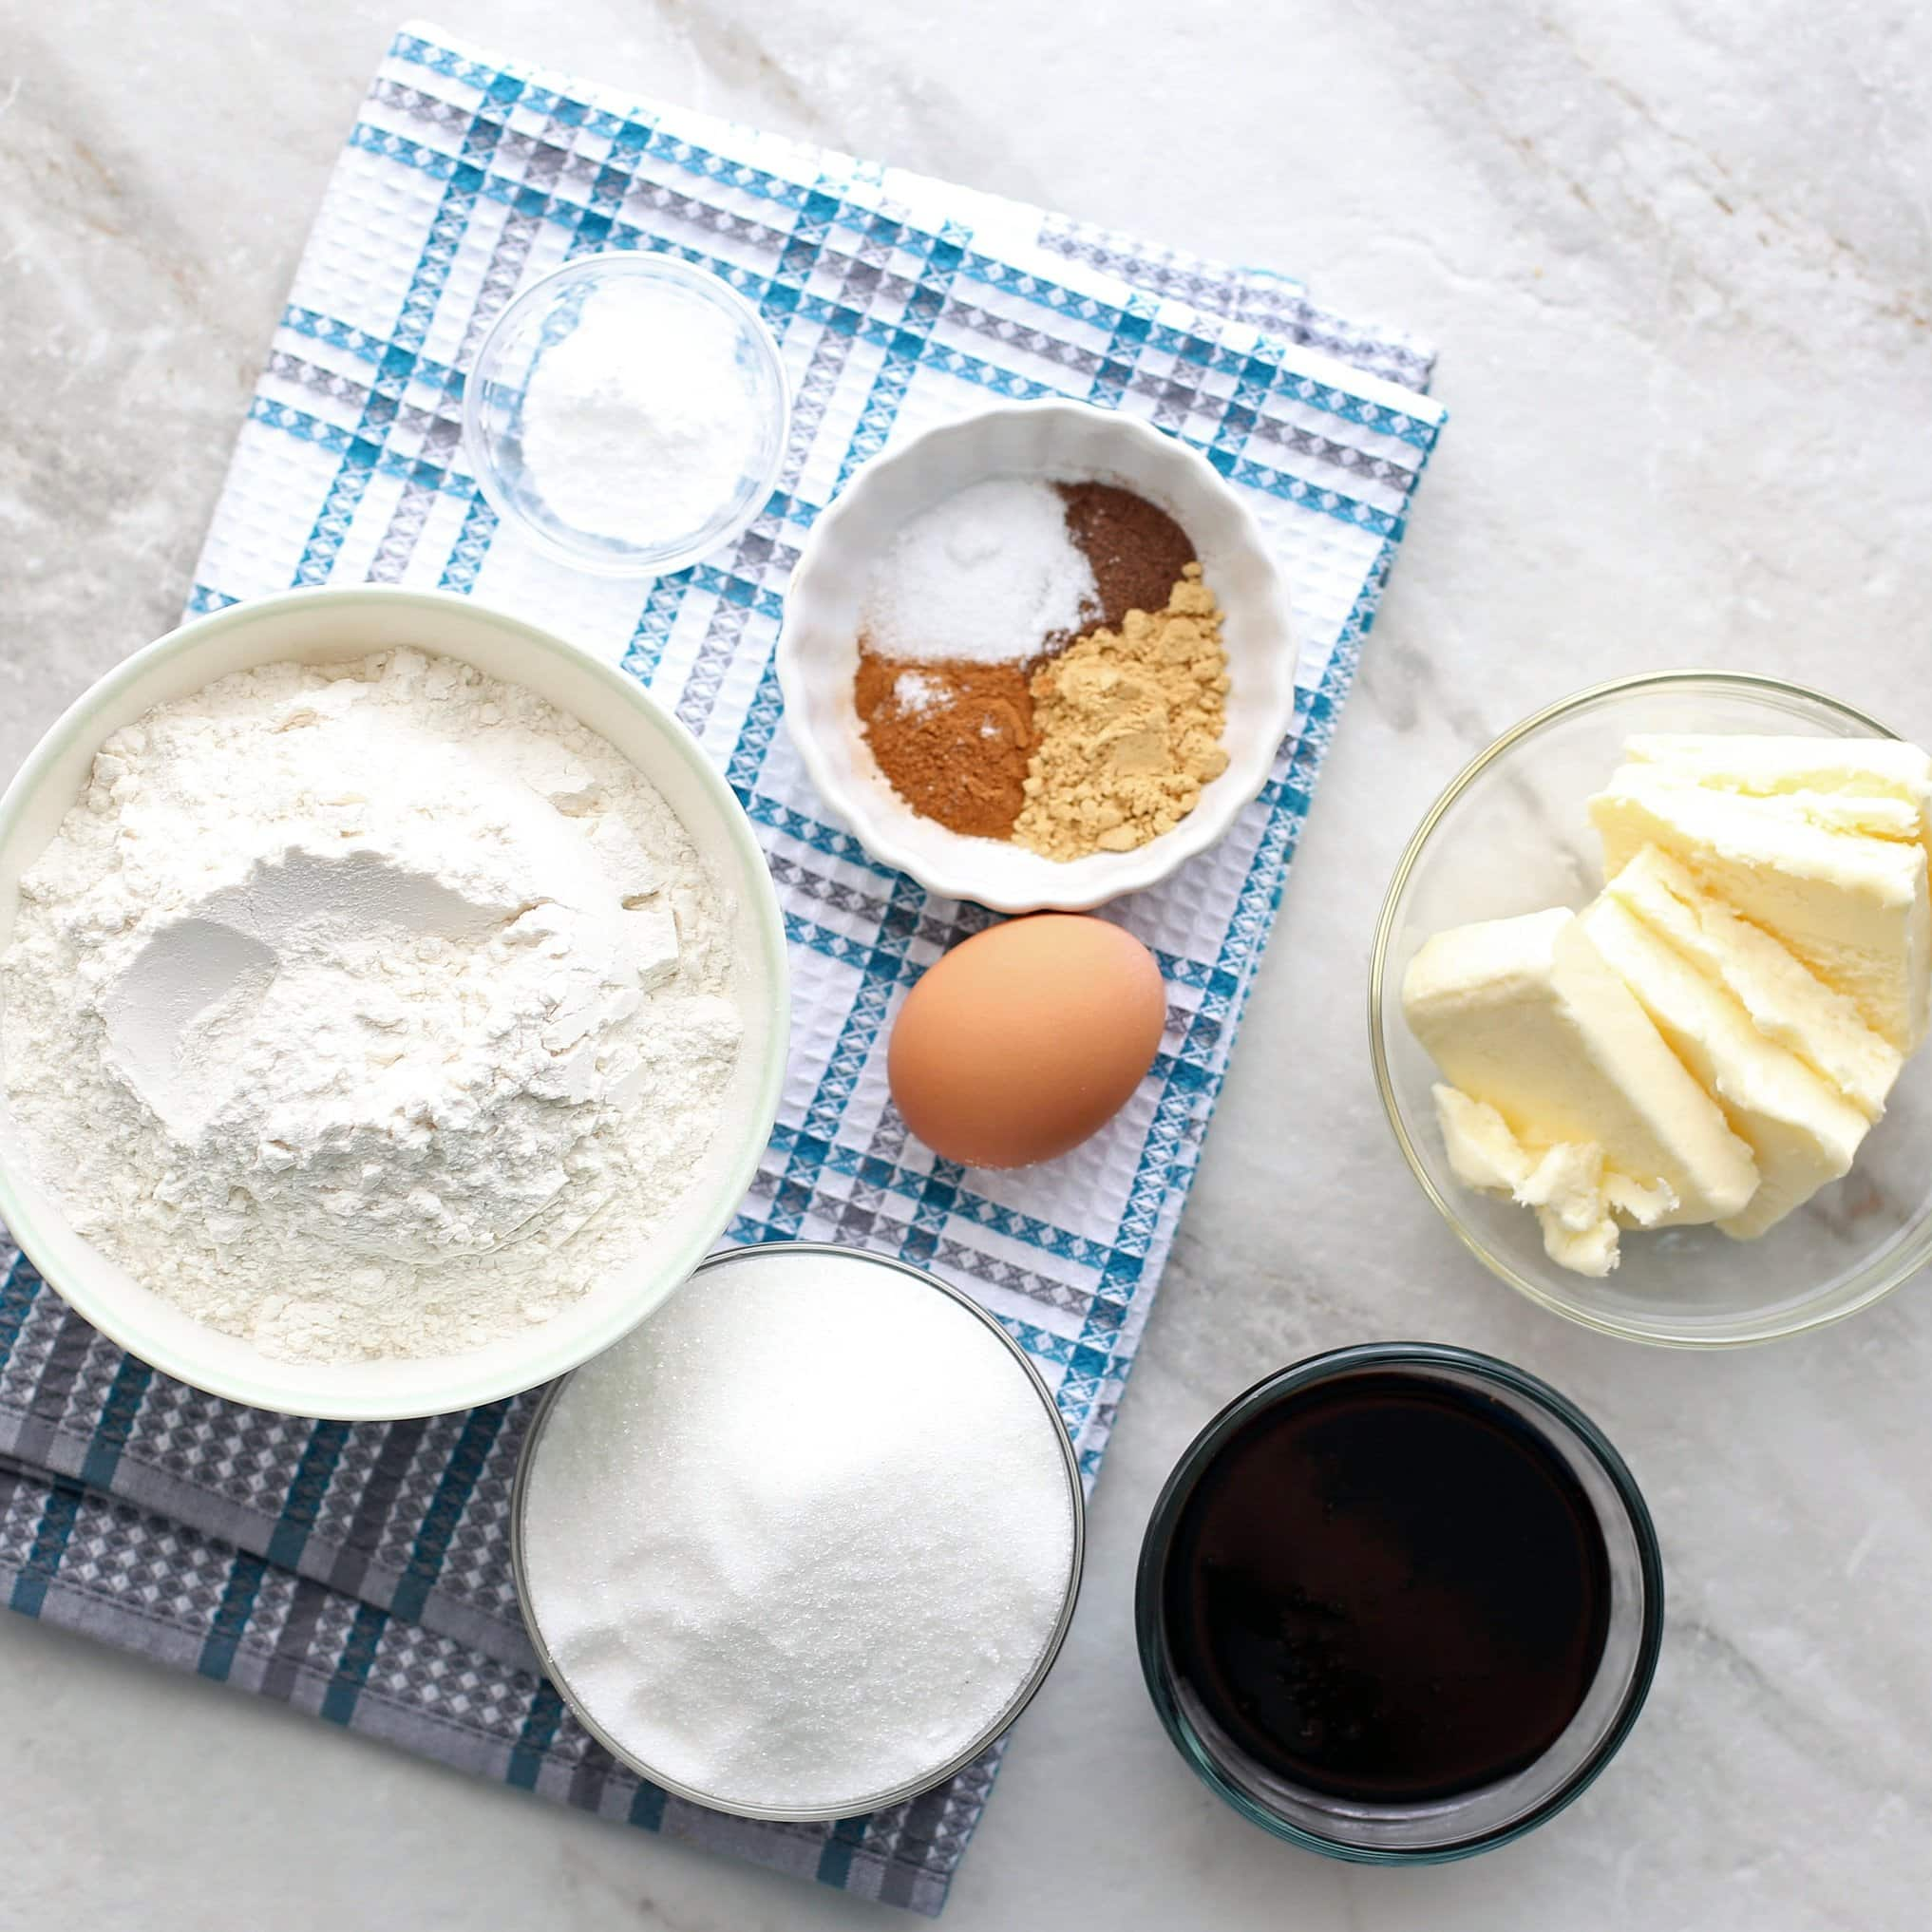 Overhead view of a flour mixture,sugar, egg, molasses, butter, baking soda, and spices.